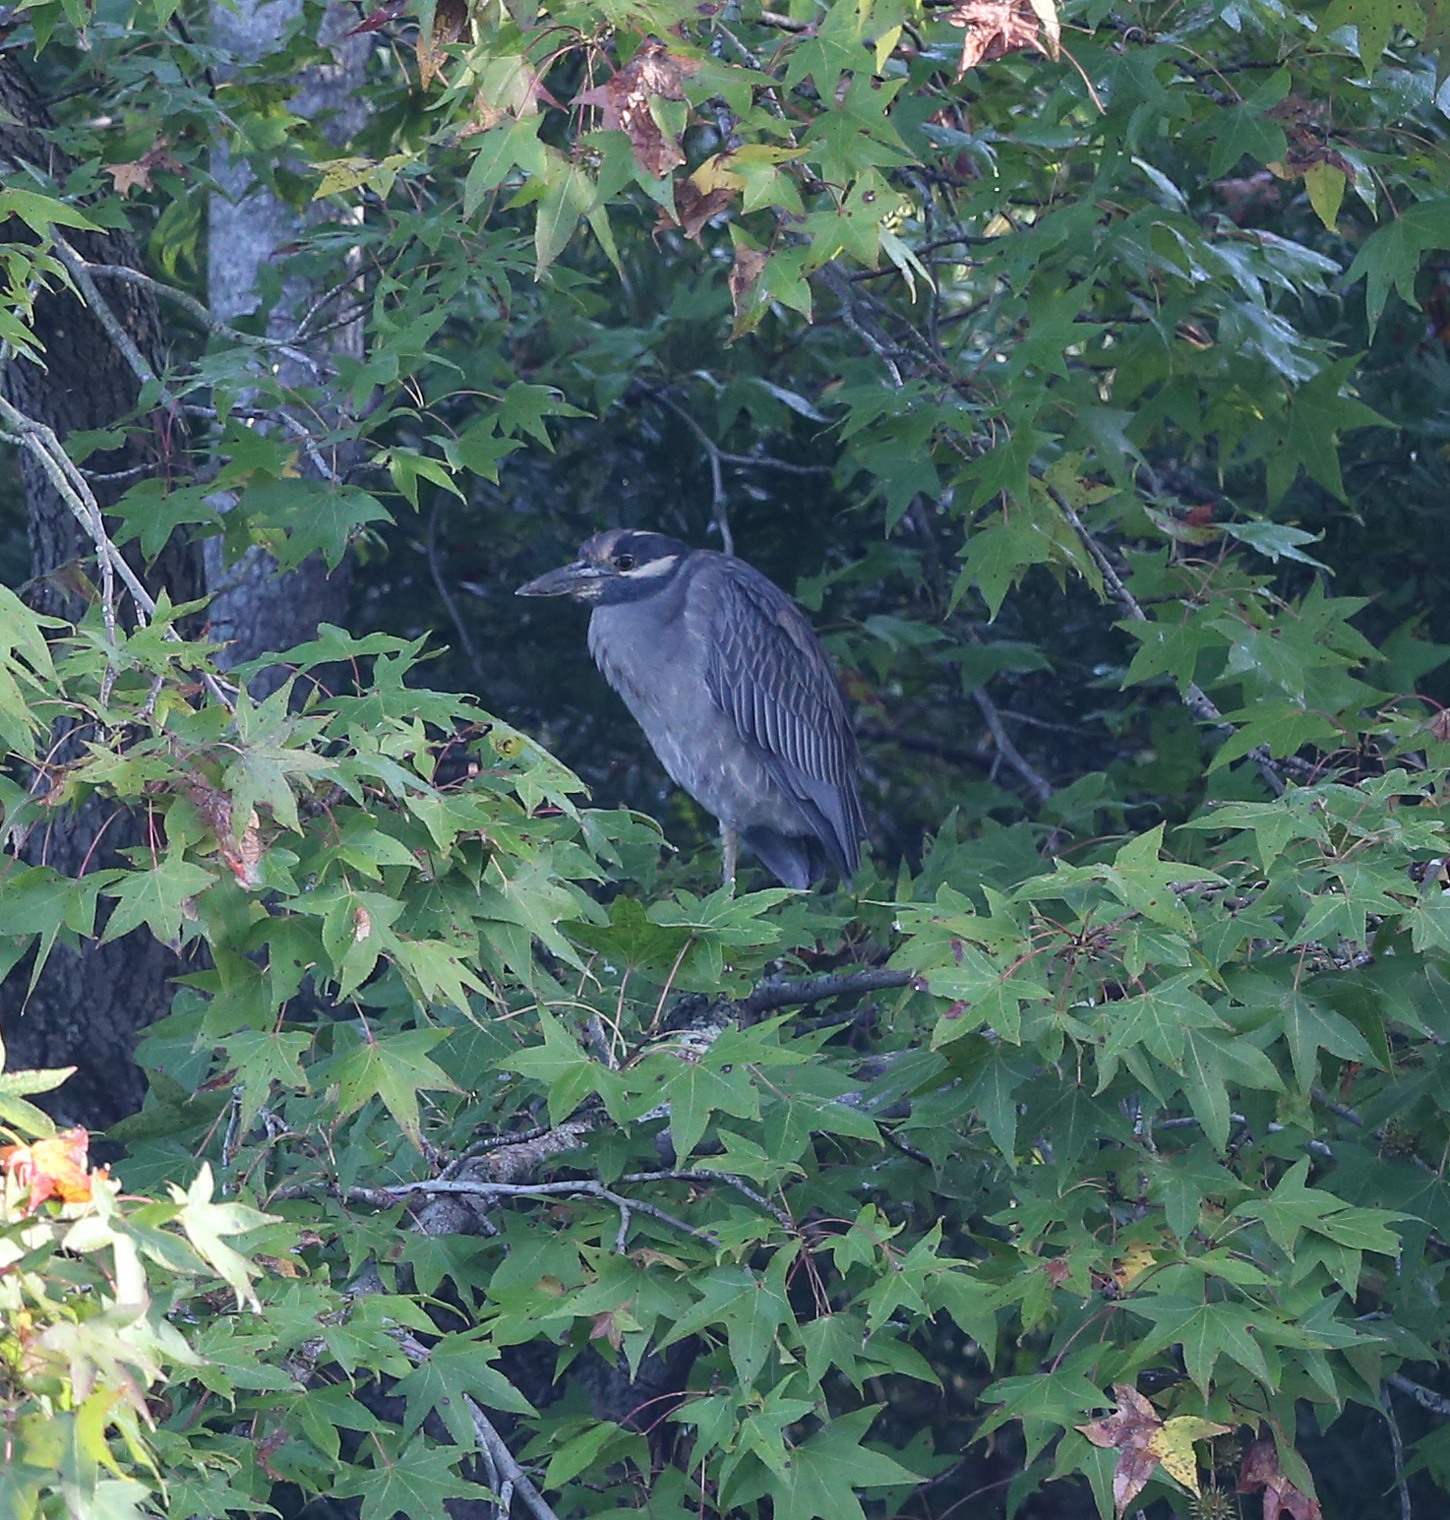 Adult Yellow-crowned Night Heron